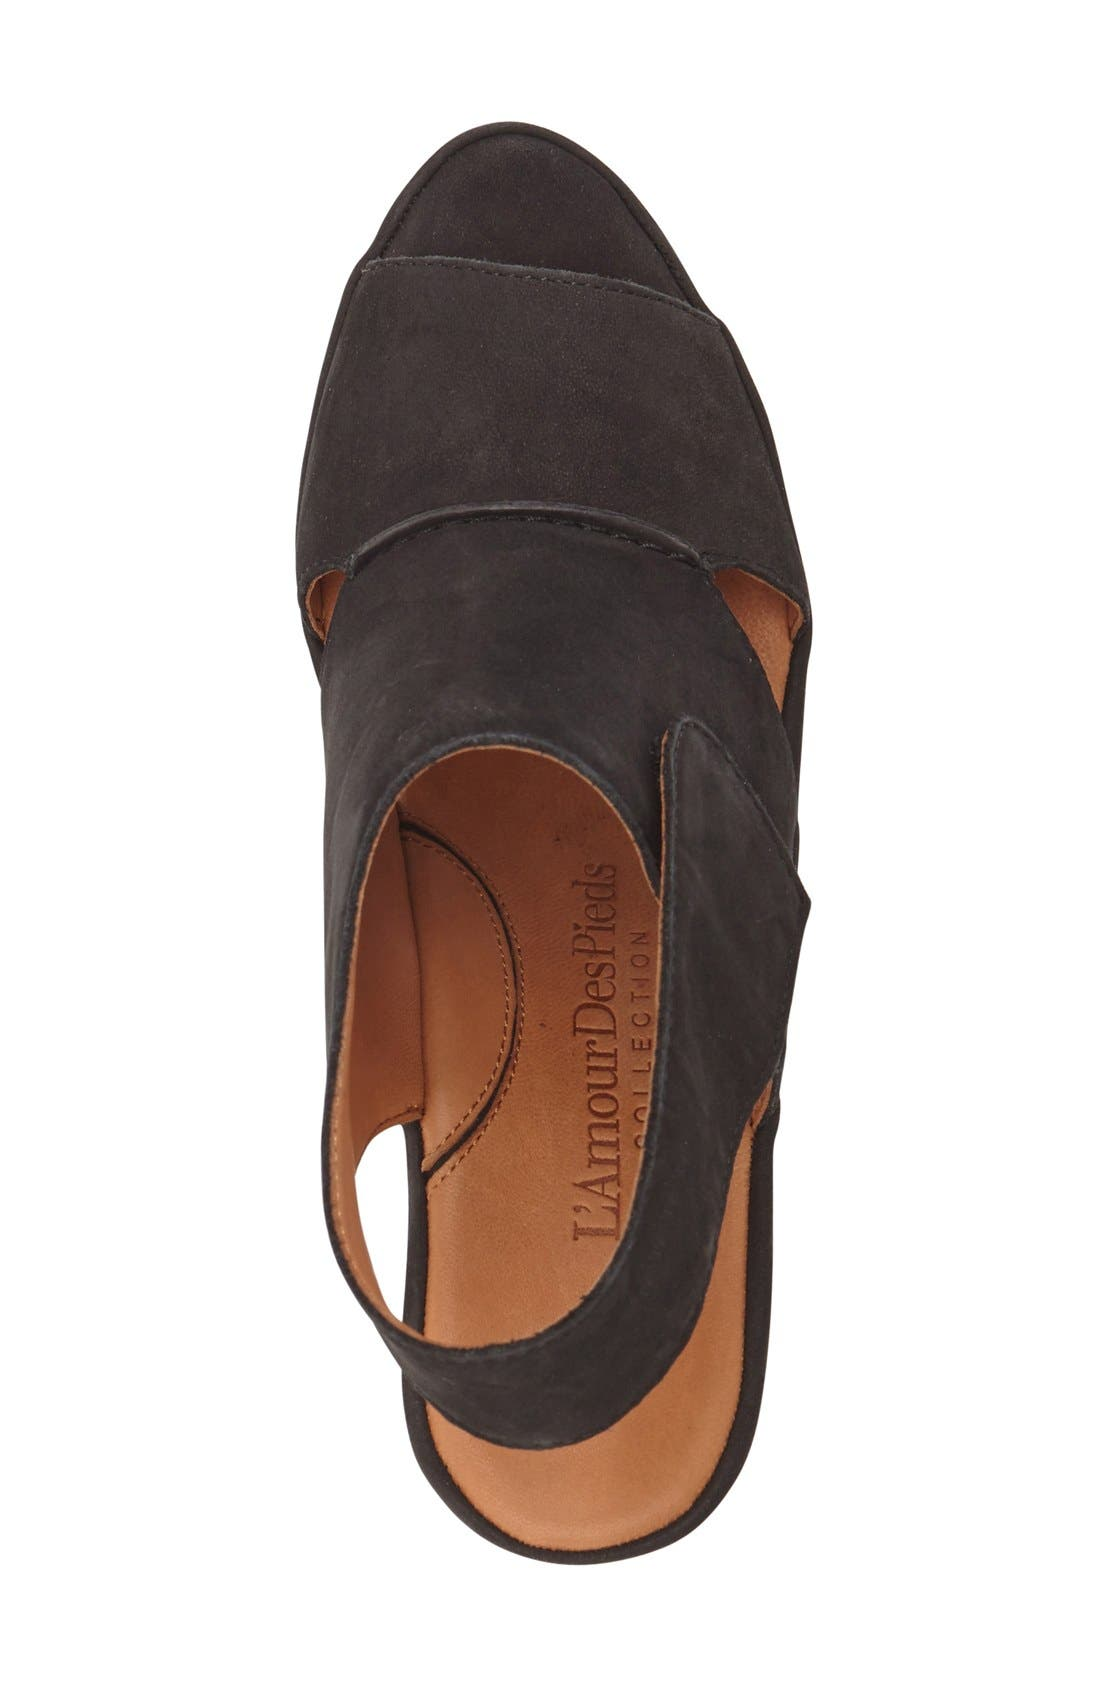 'Oswin' Peep Toe Demi Wedge Sandal,                             Alternate thumbnail 3, color,                             Black Nubuck Leather